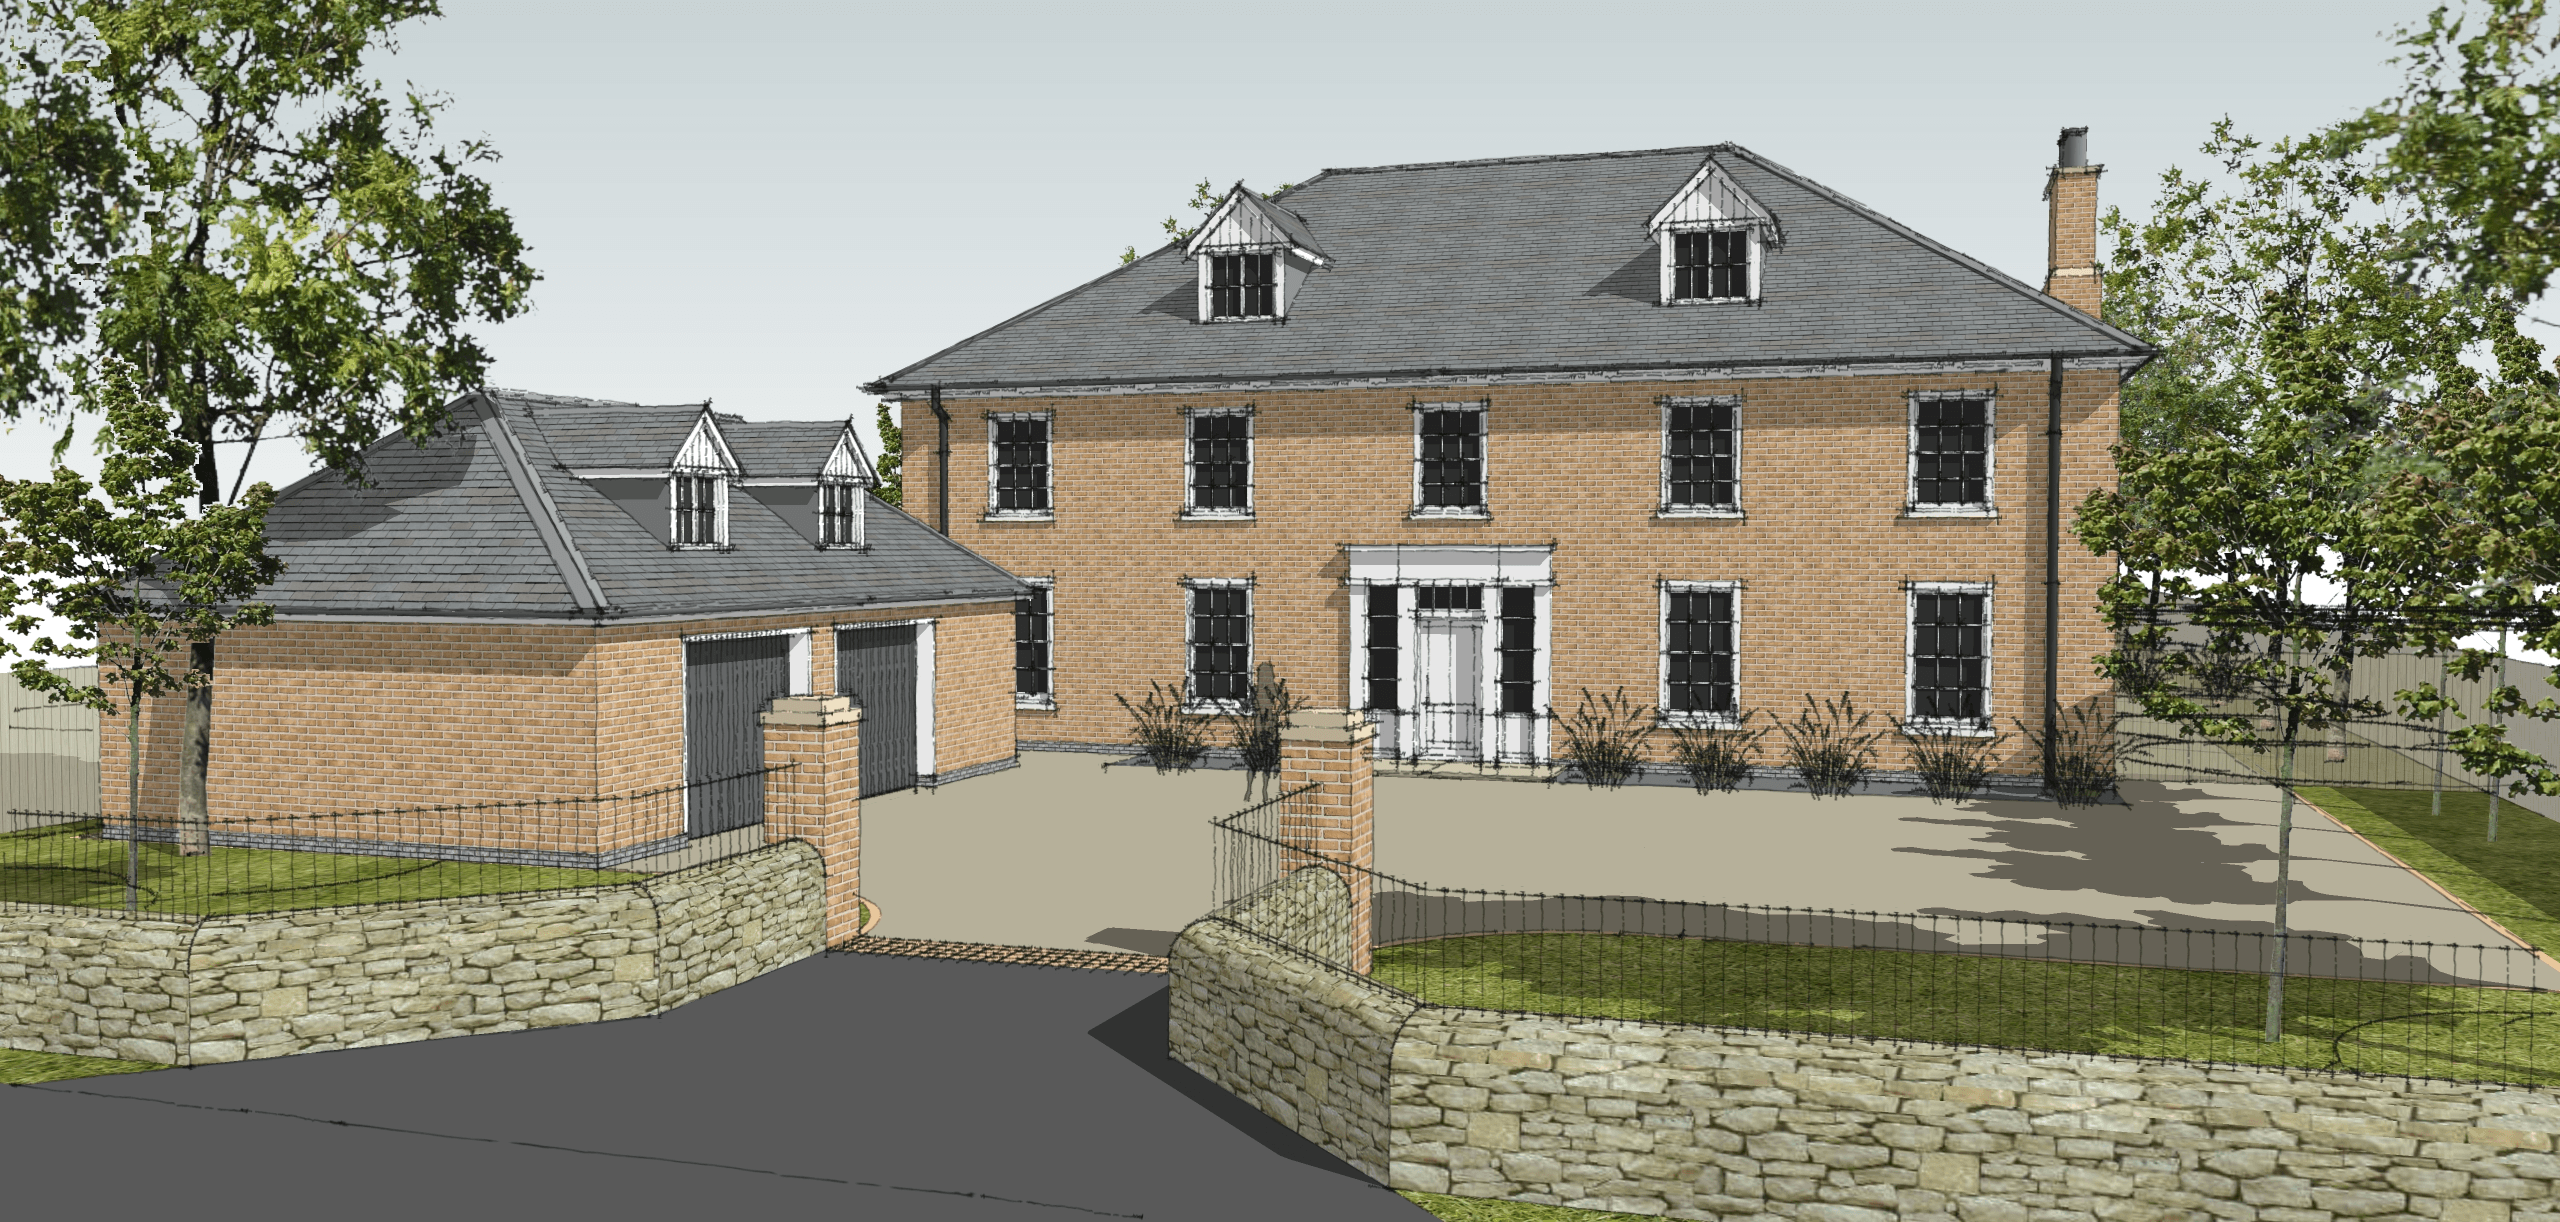 New build georgian inspired house leaf architecture for Village house design images